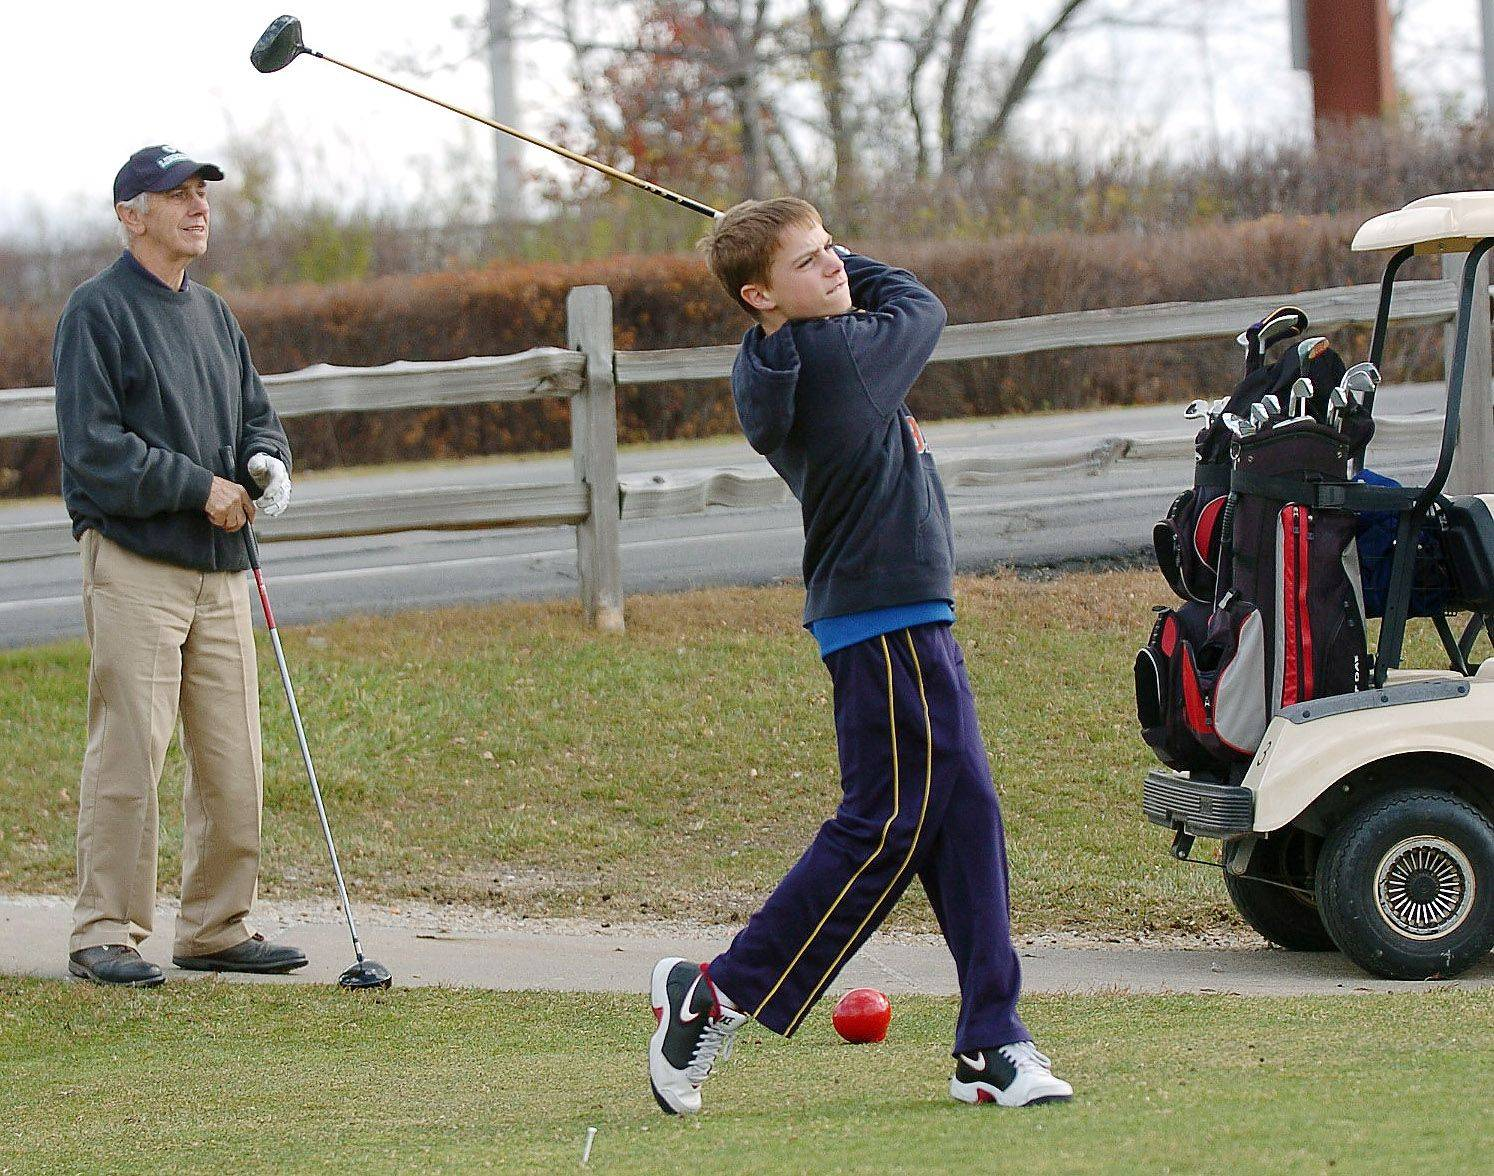 Jim Nix of Palatine watches his grandson Ryan Hodes tee off while playing a round of golf at Twin Lakes Golf and Recreation Area in Palatine.